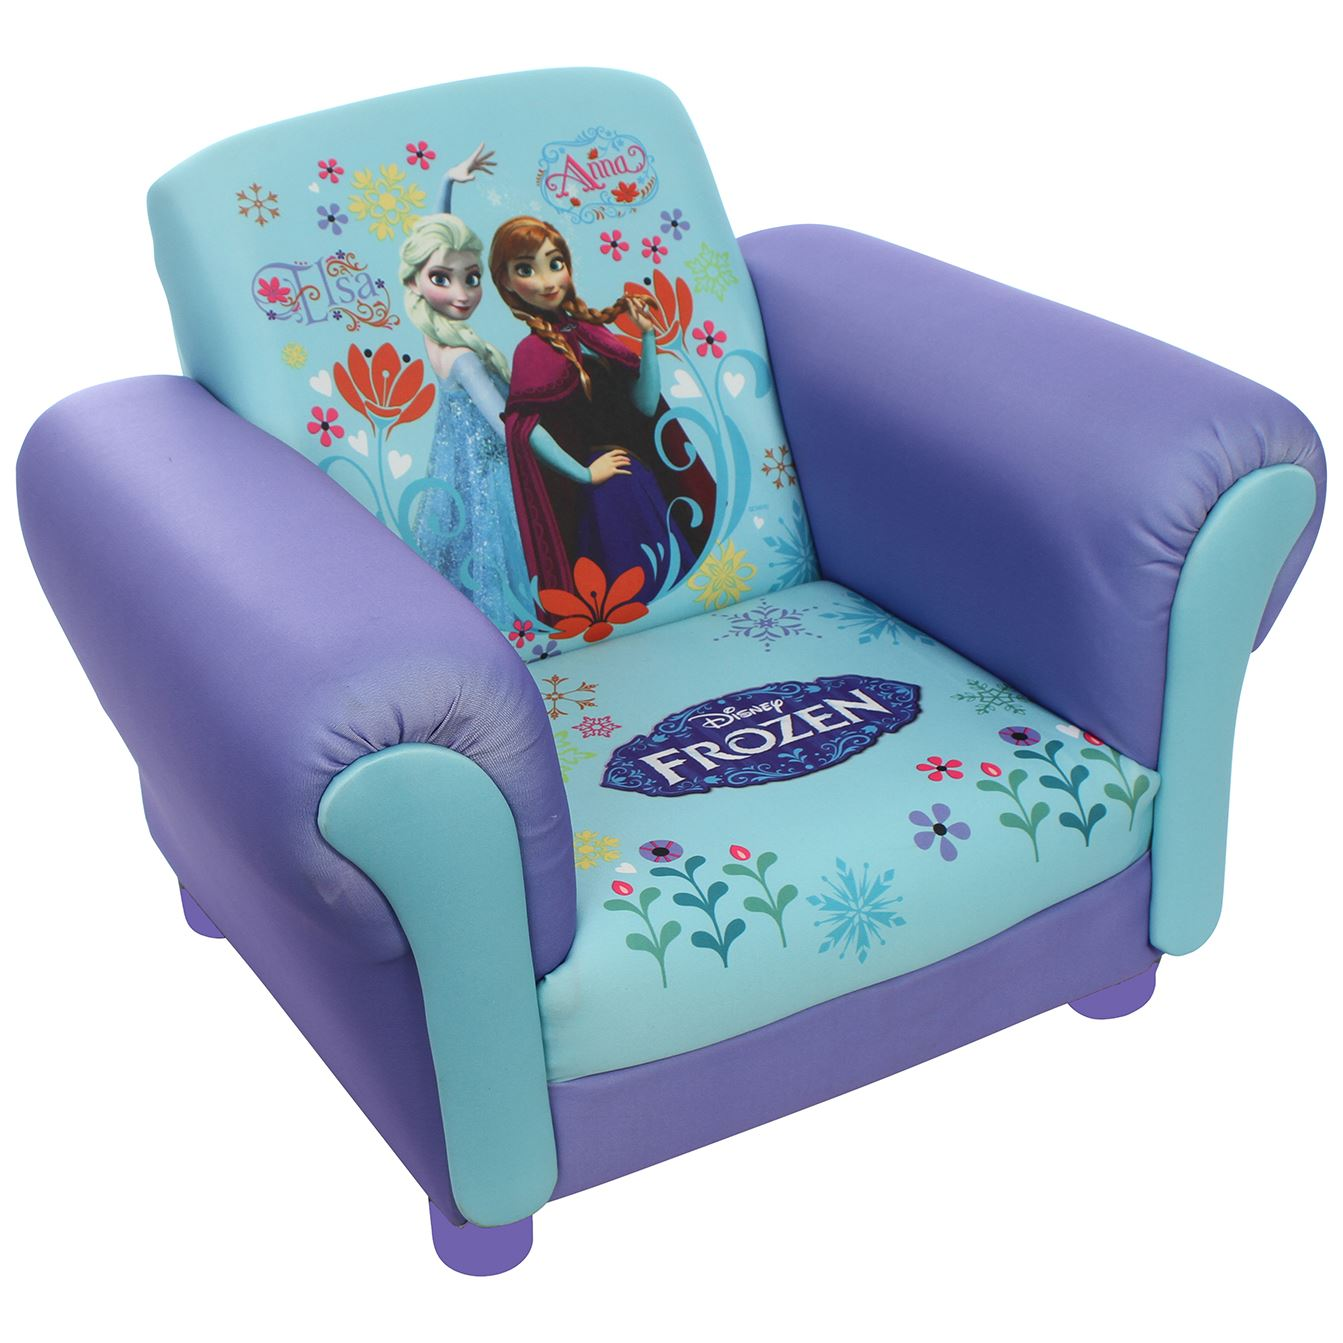 Sofa Chair For Toddler Children 39s Princess Frozen Elsa And Anna Upholstered Chair